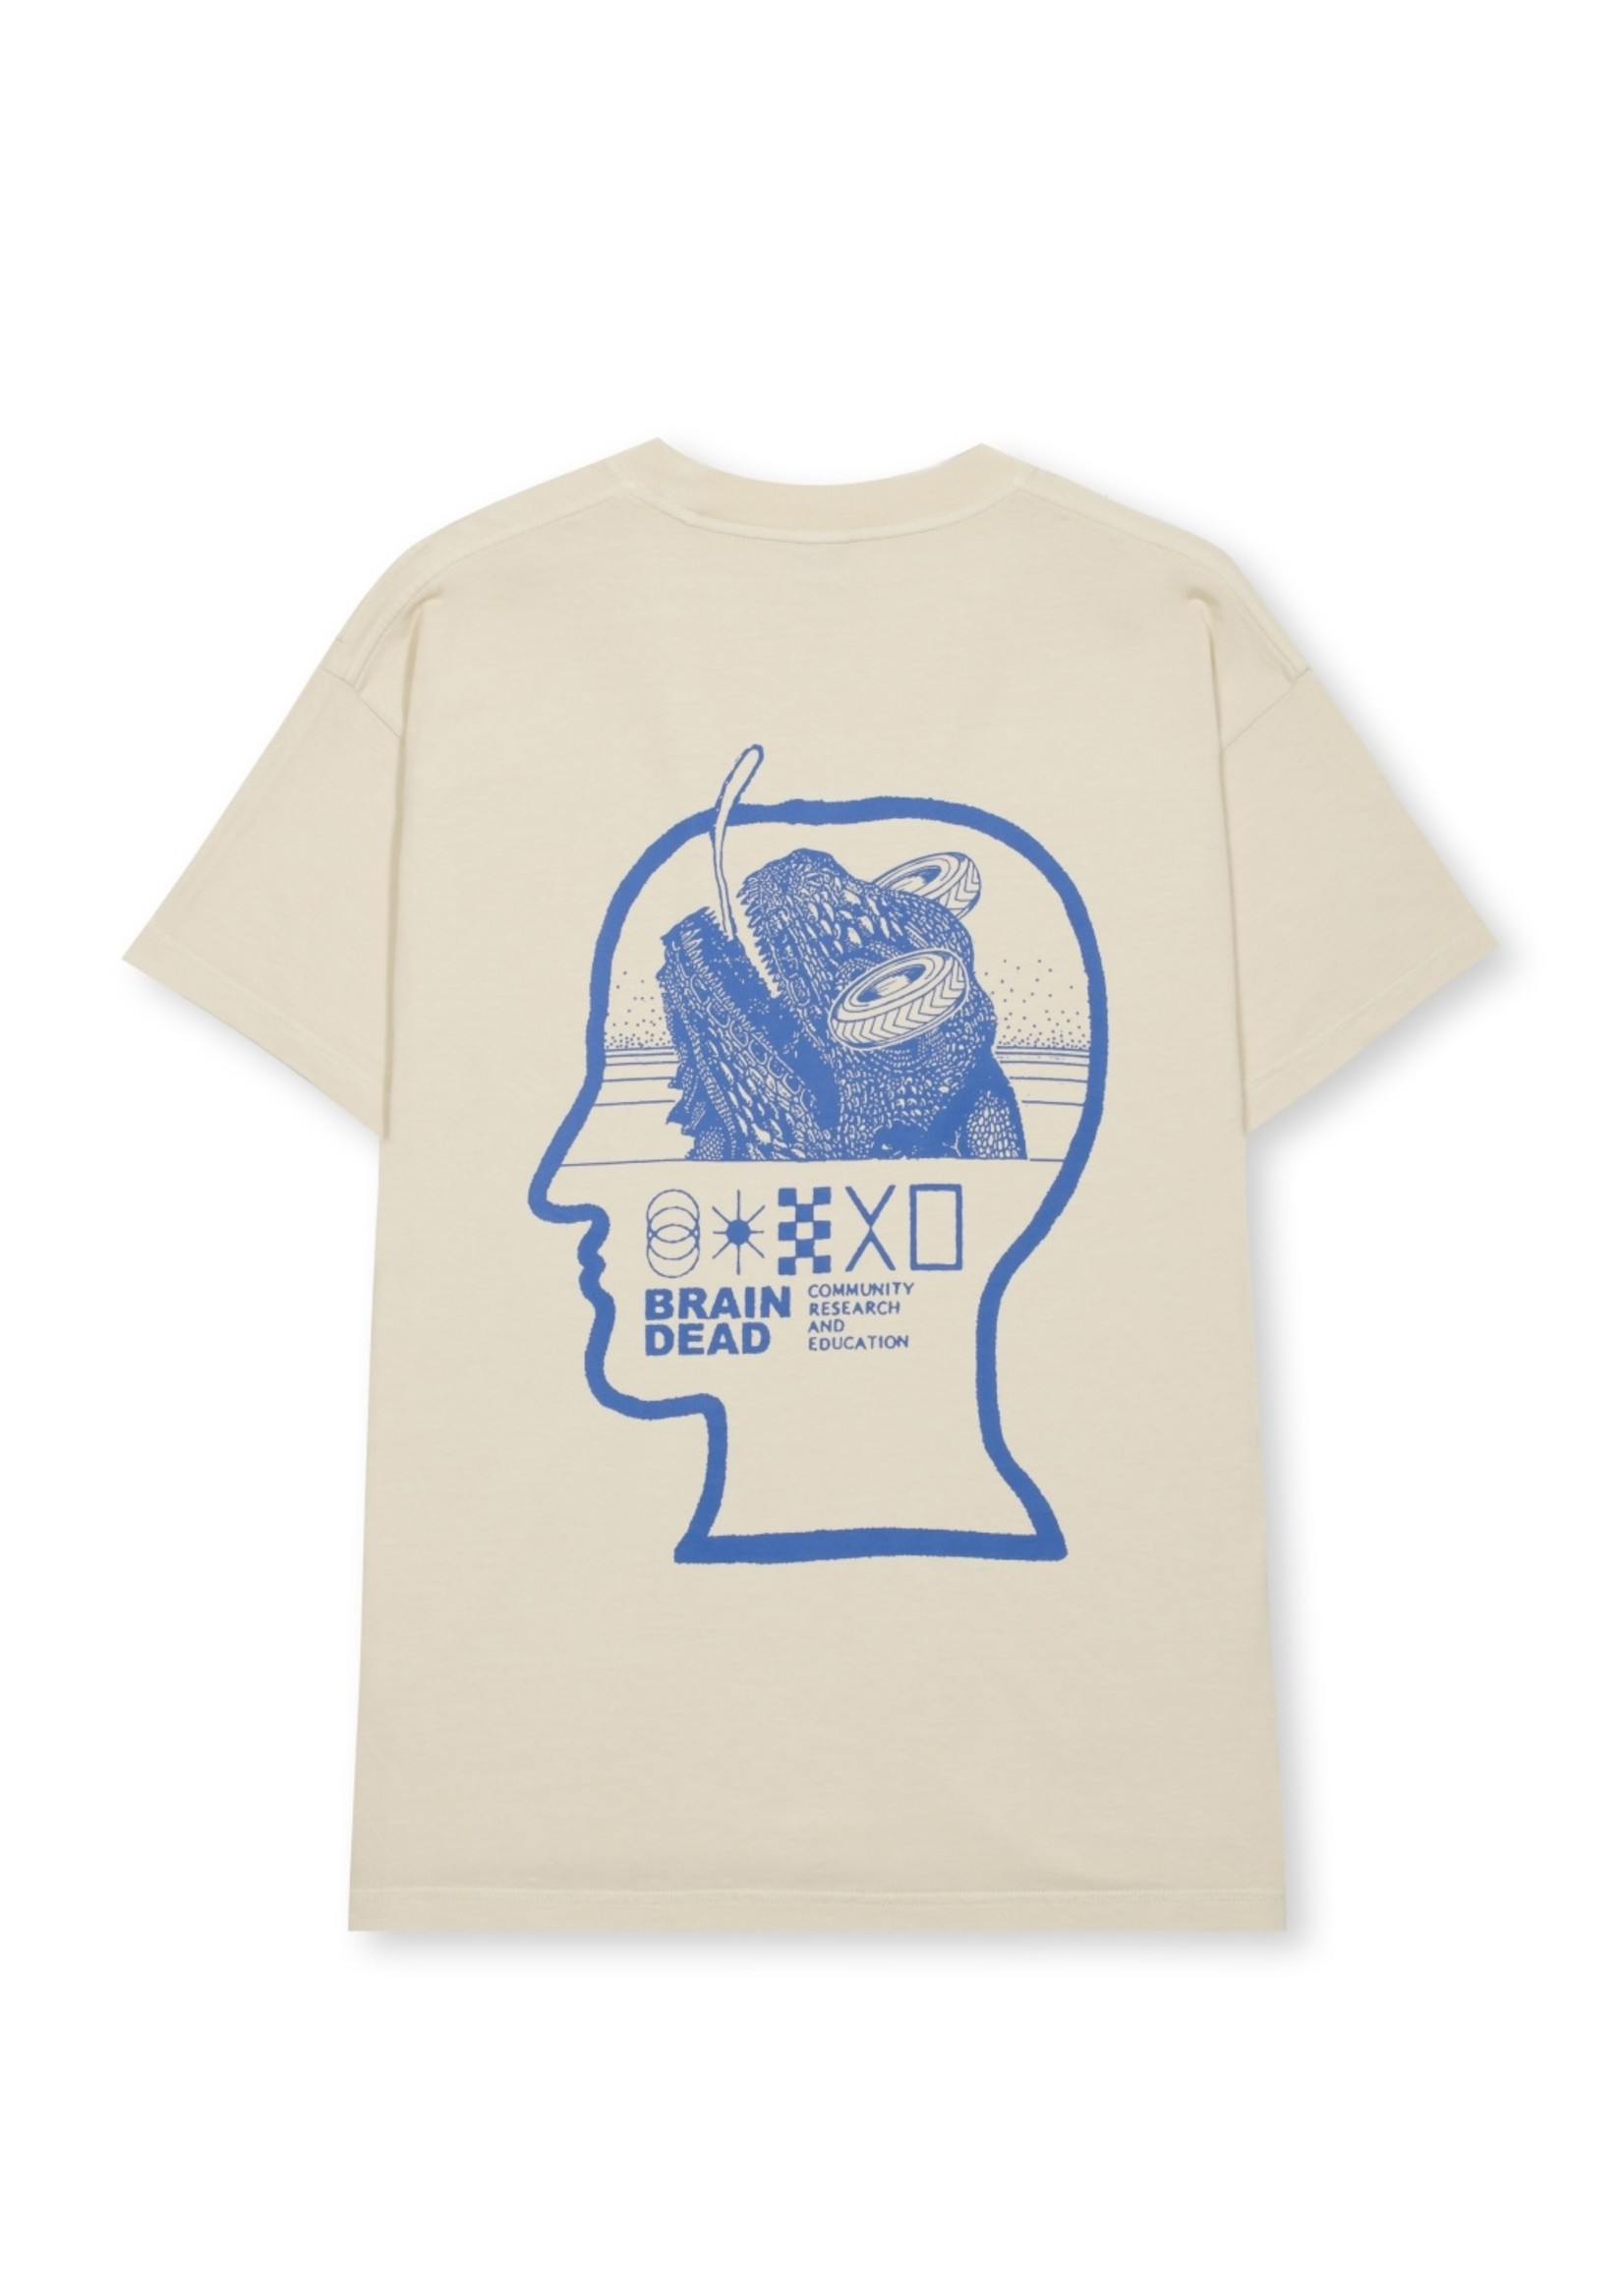 Brain Dead Community, Research, Education T-shirt in Sand